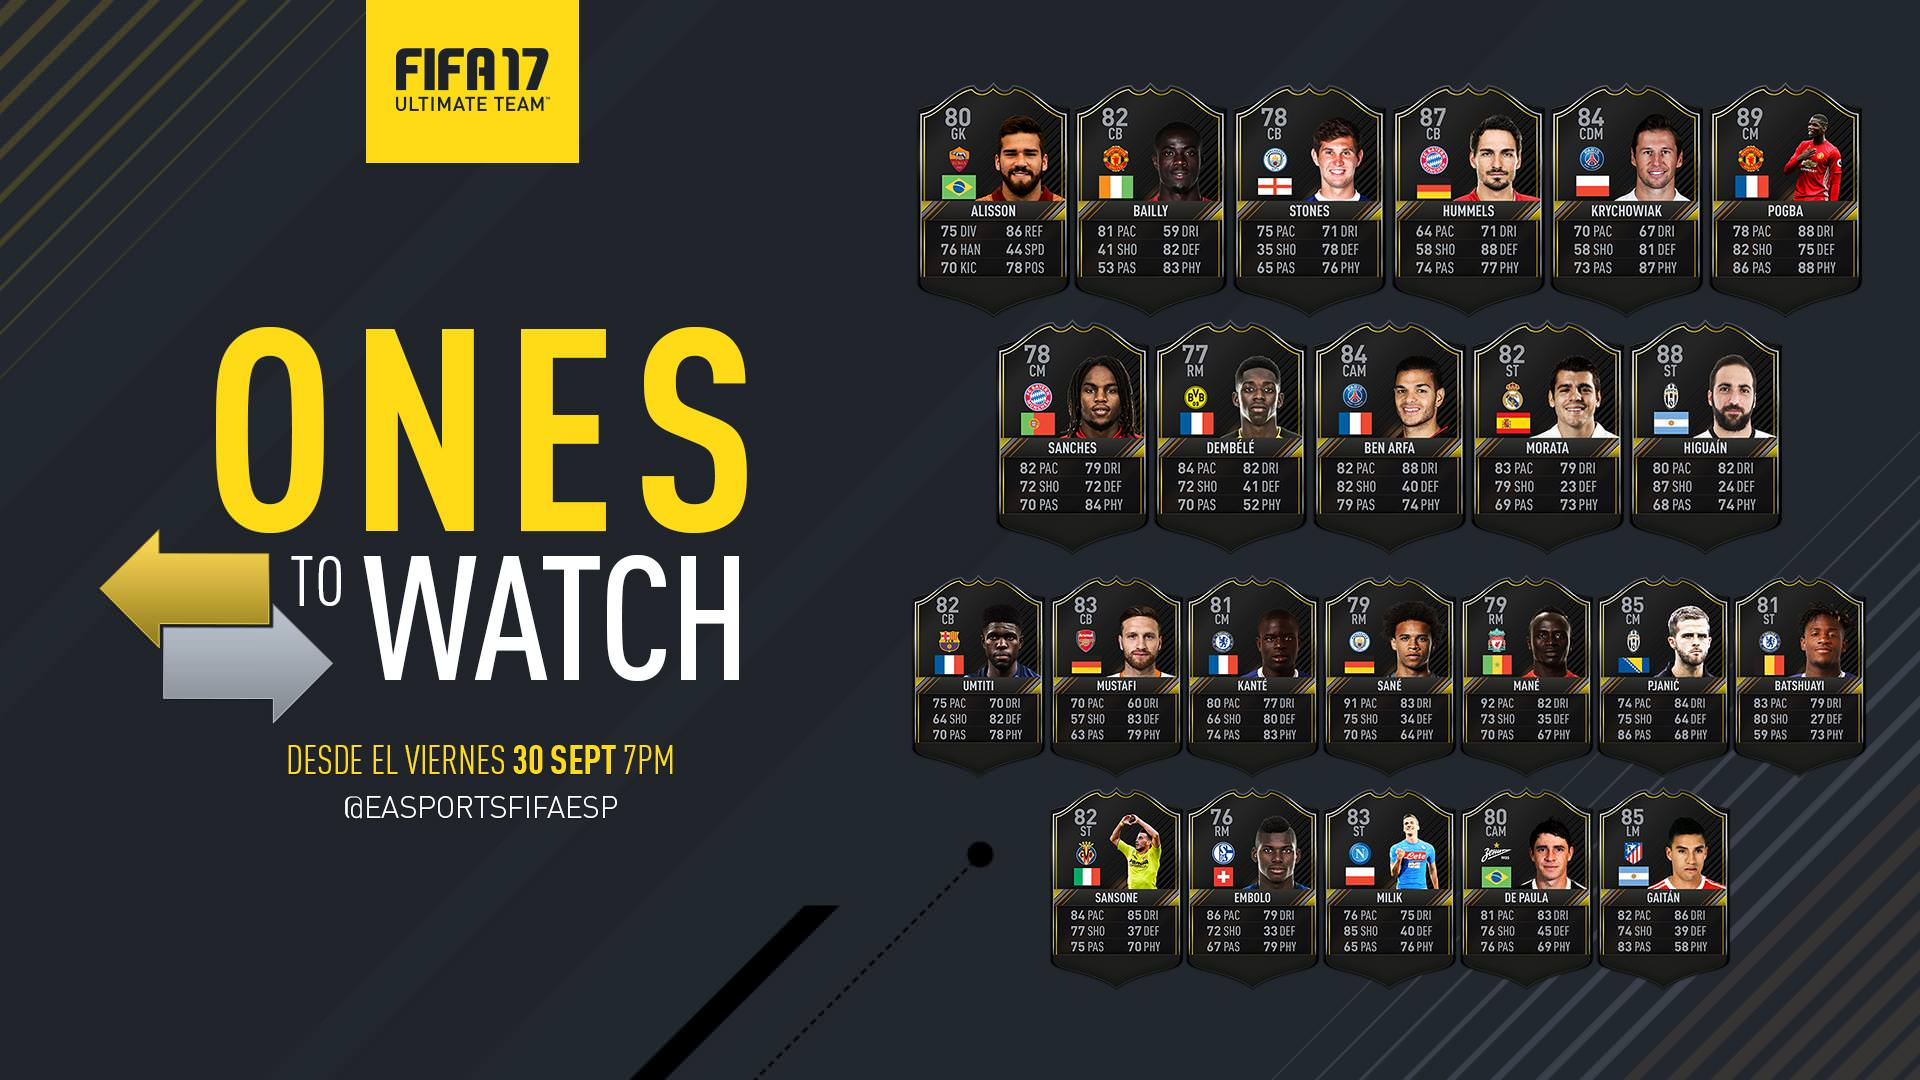 FIFA 17 Ultimate Team - Ones to Watch